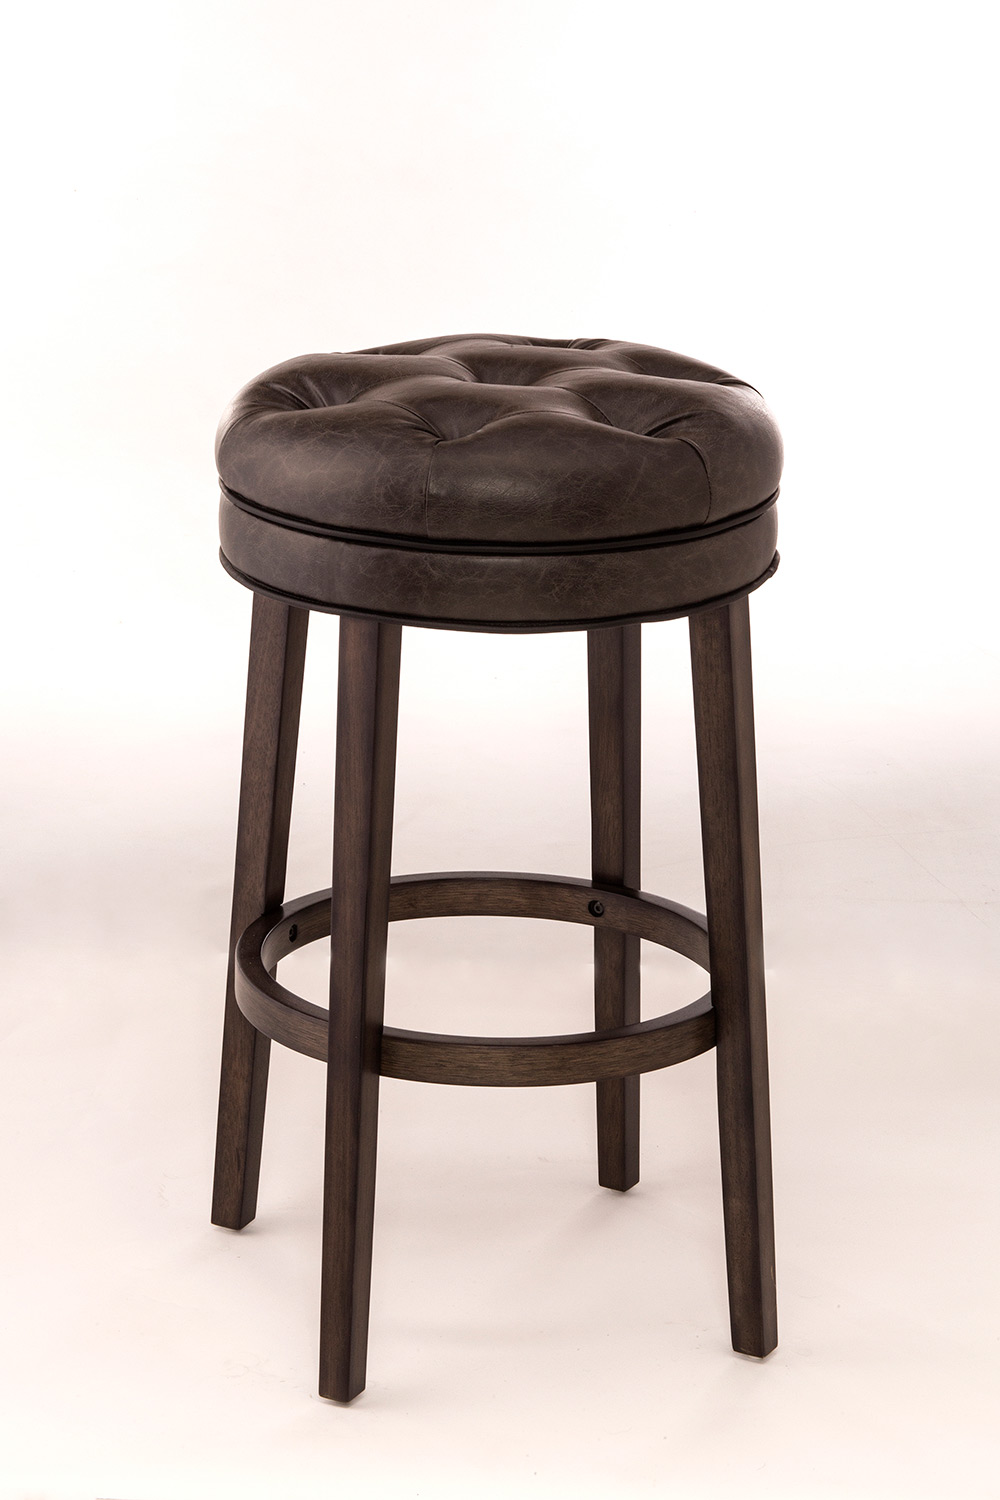 Hillsdale Krauss Backless Swivel Counter Stool Gray Faux